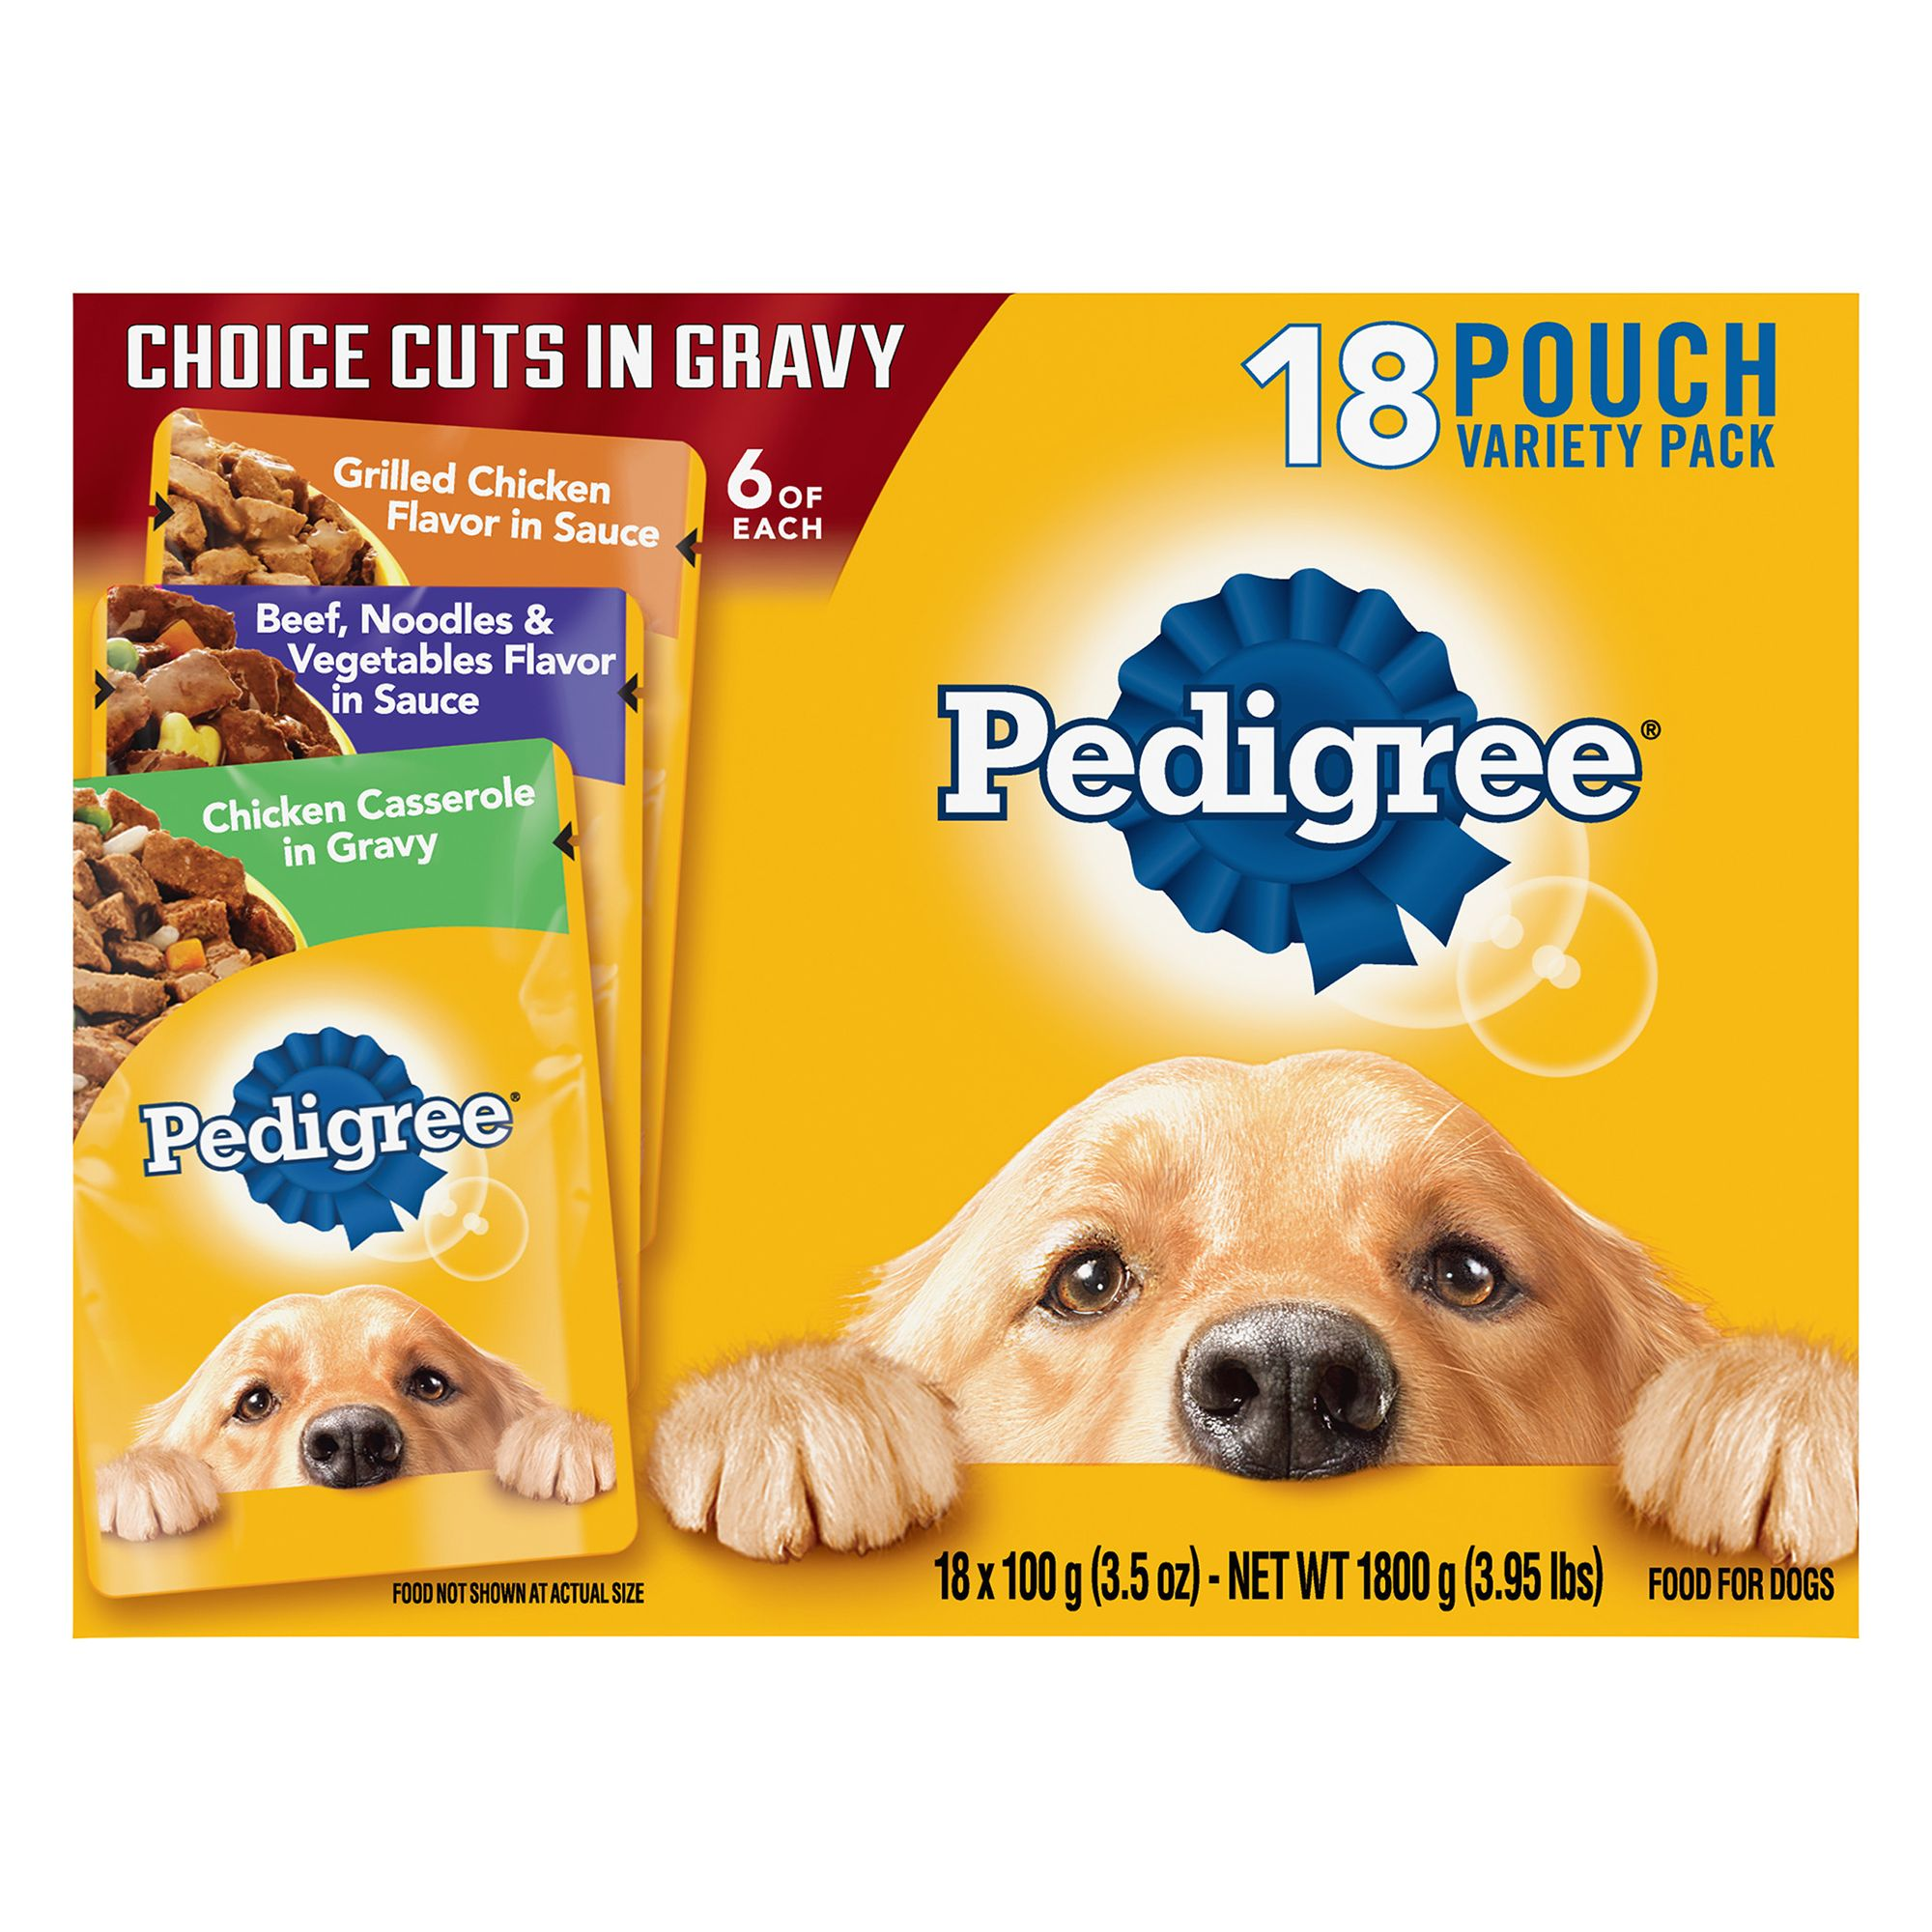 Pedigree® Adult Dog Food - Choice Cuts in Gravy, Variety Pack, 18ct 5262185